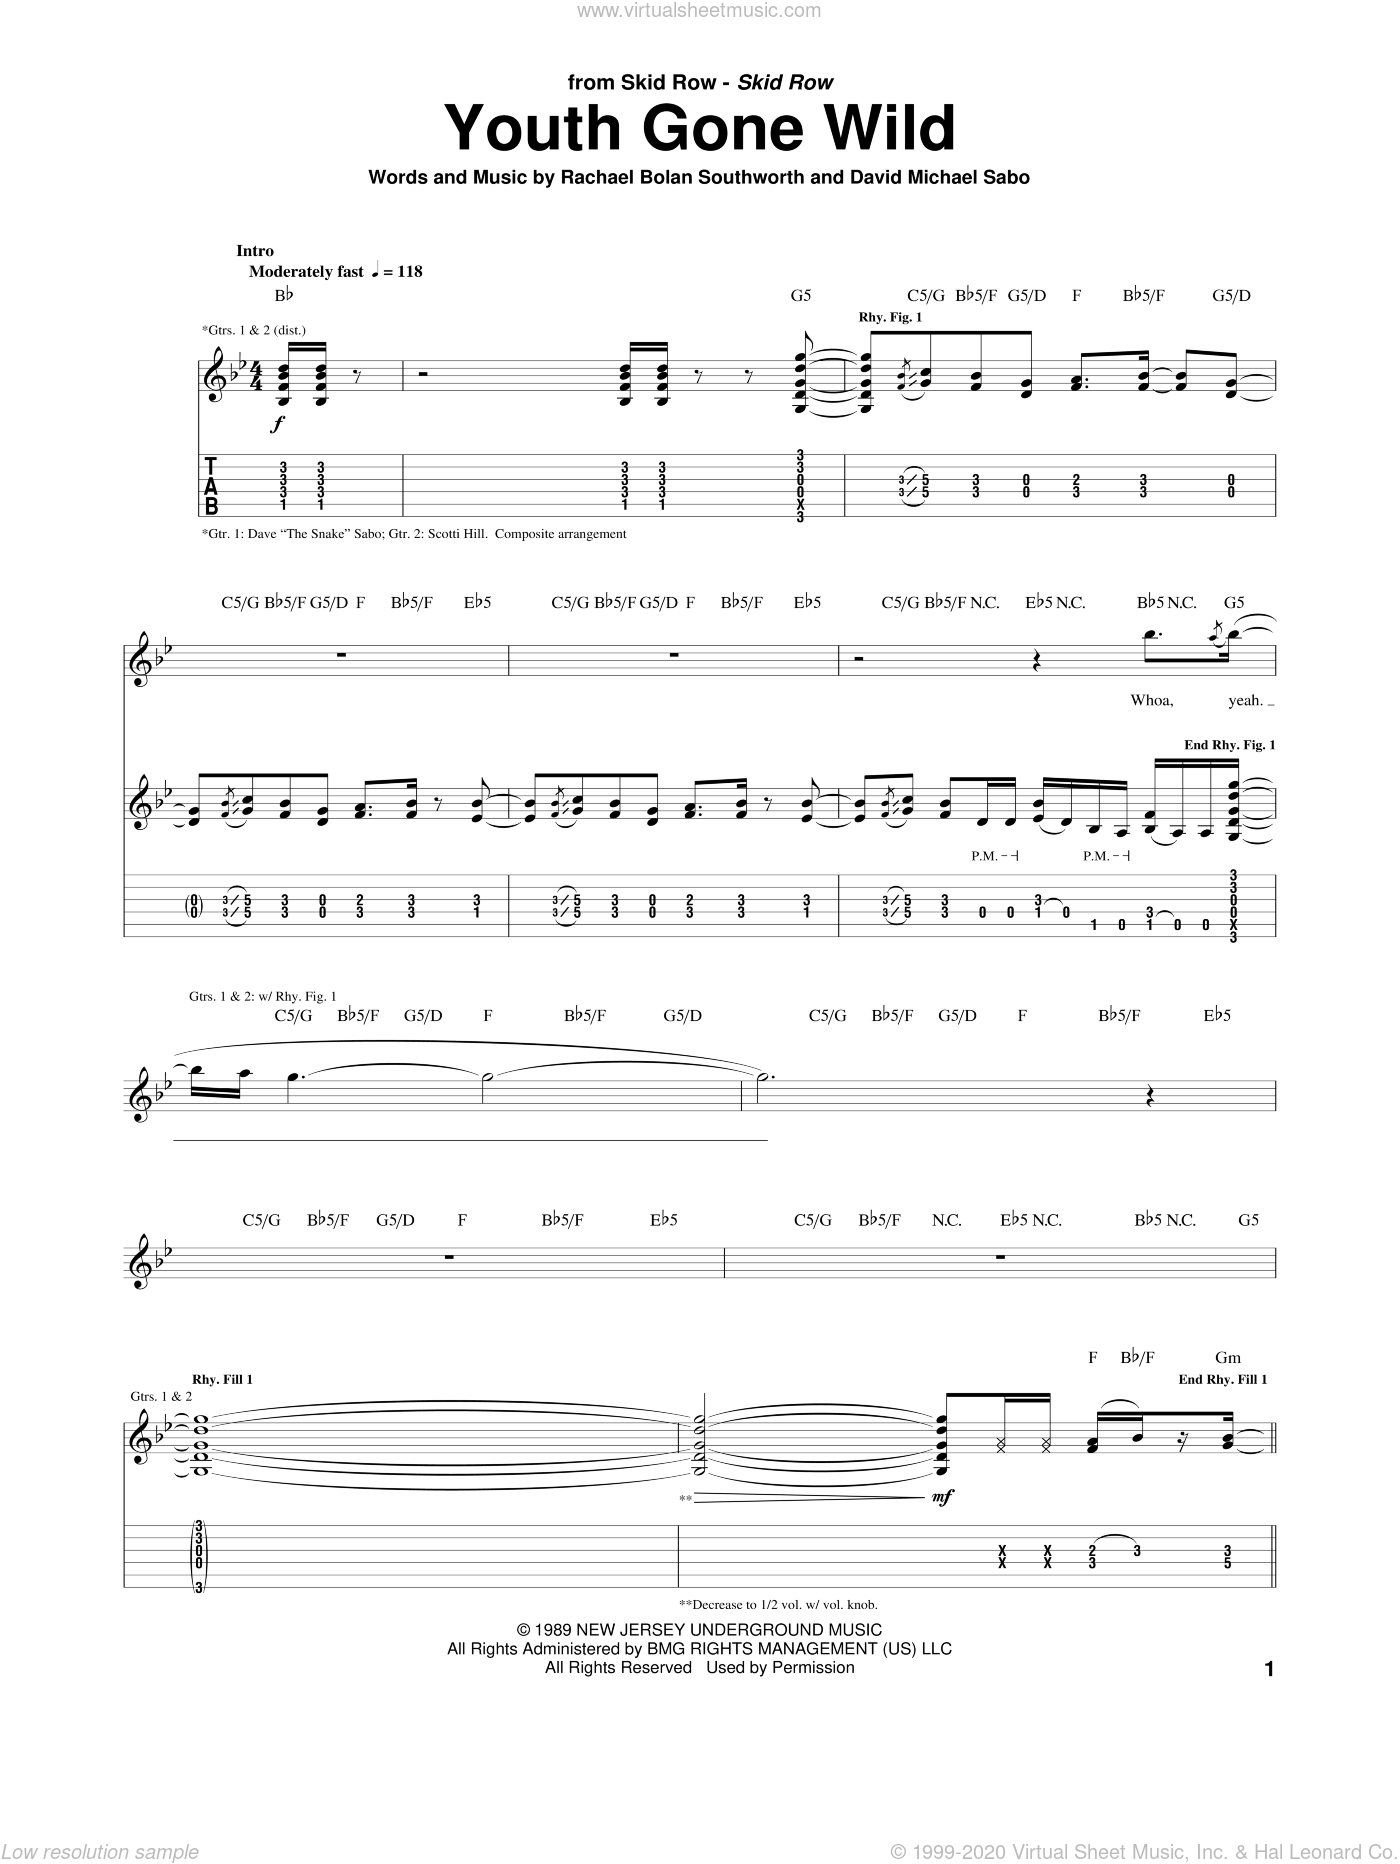 Youth Gone Wild sheet music for guitar (tablature) by Rachel Bolan